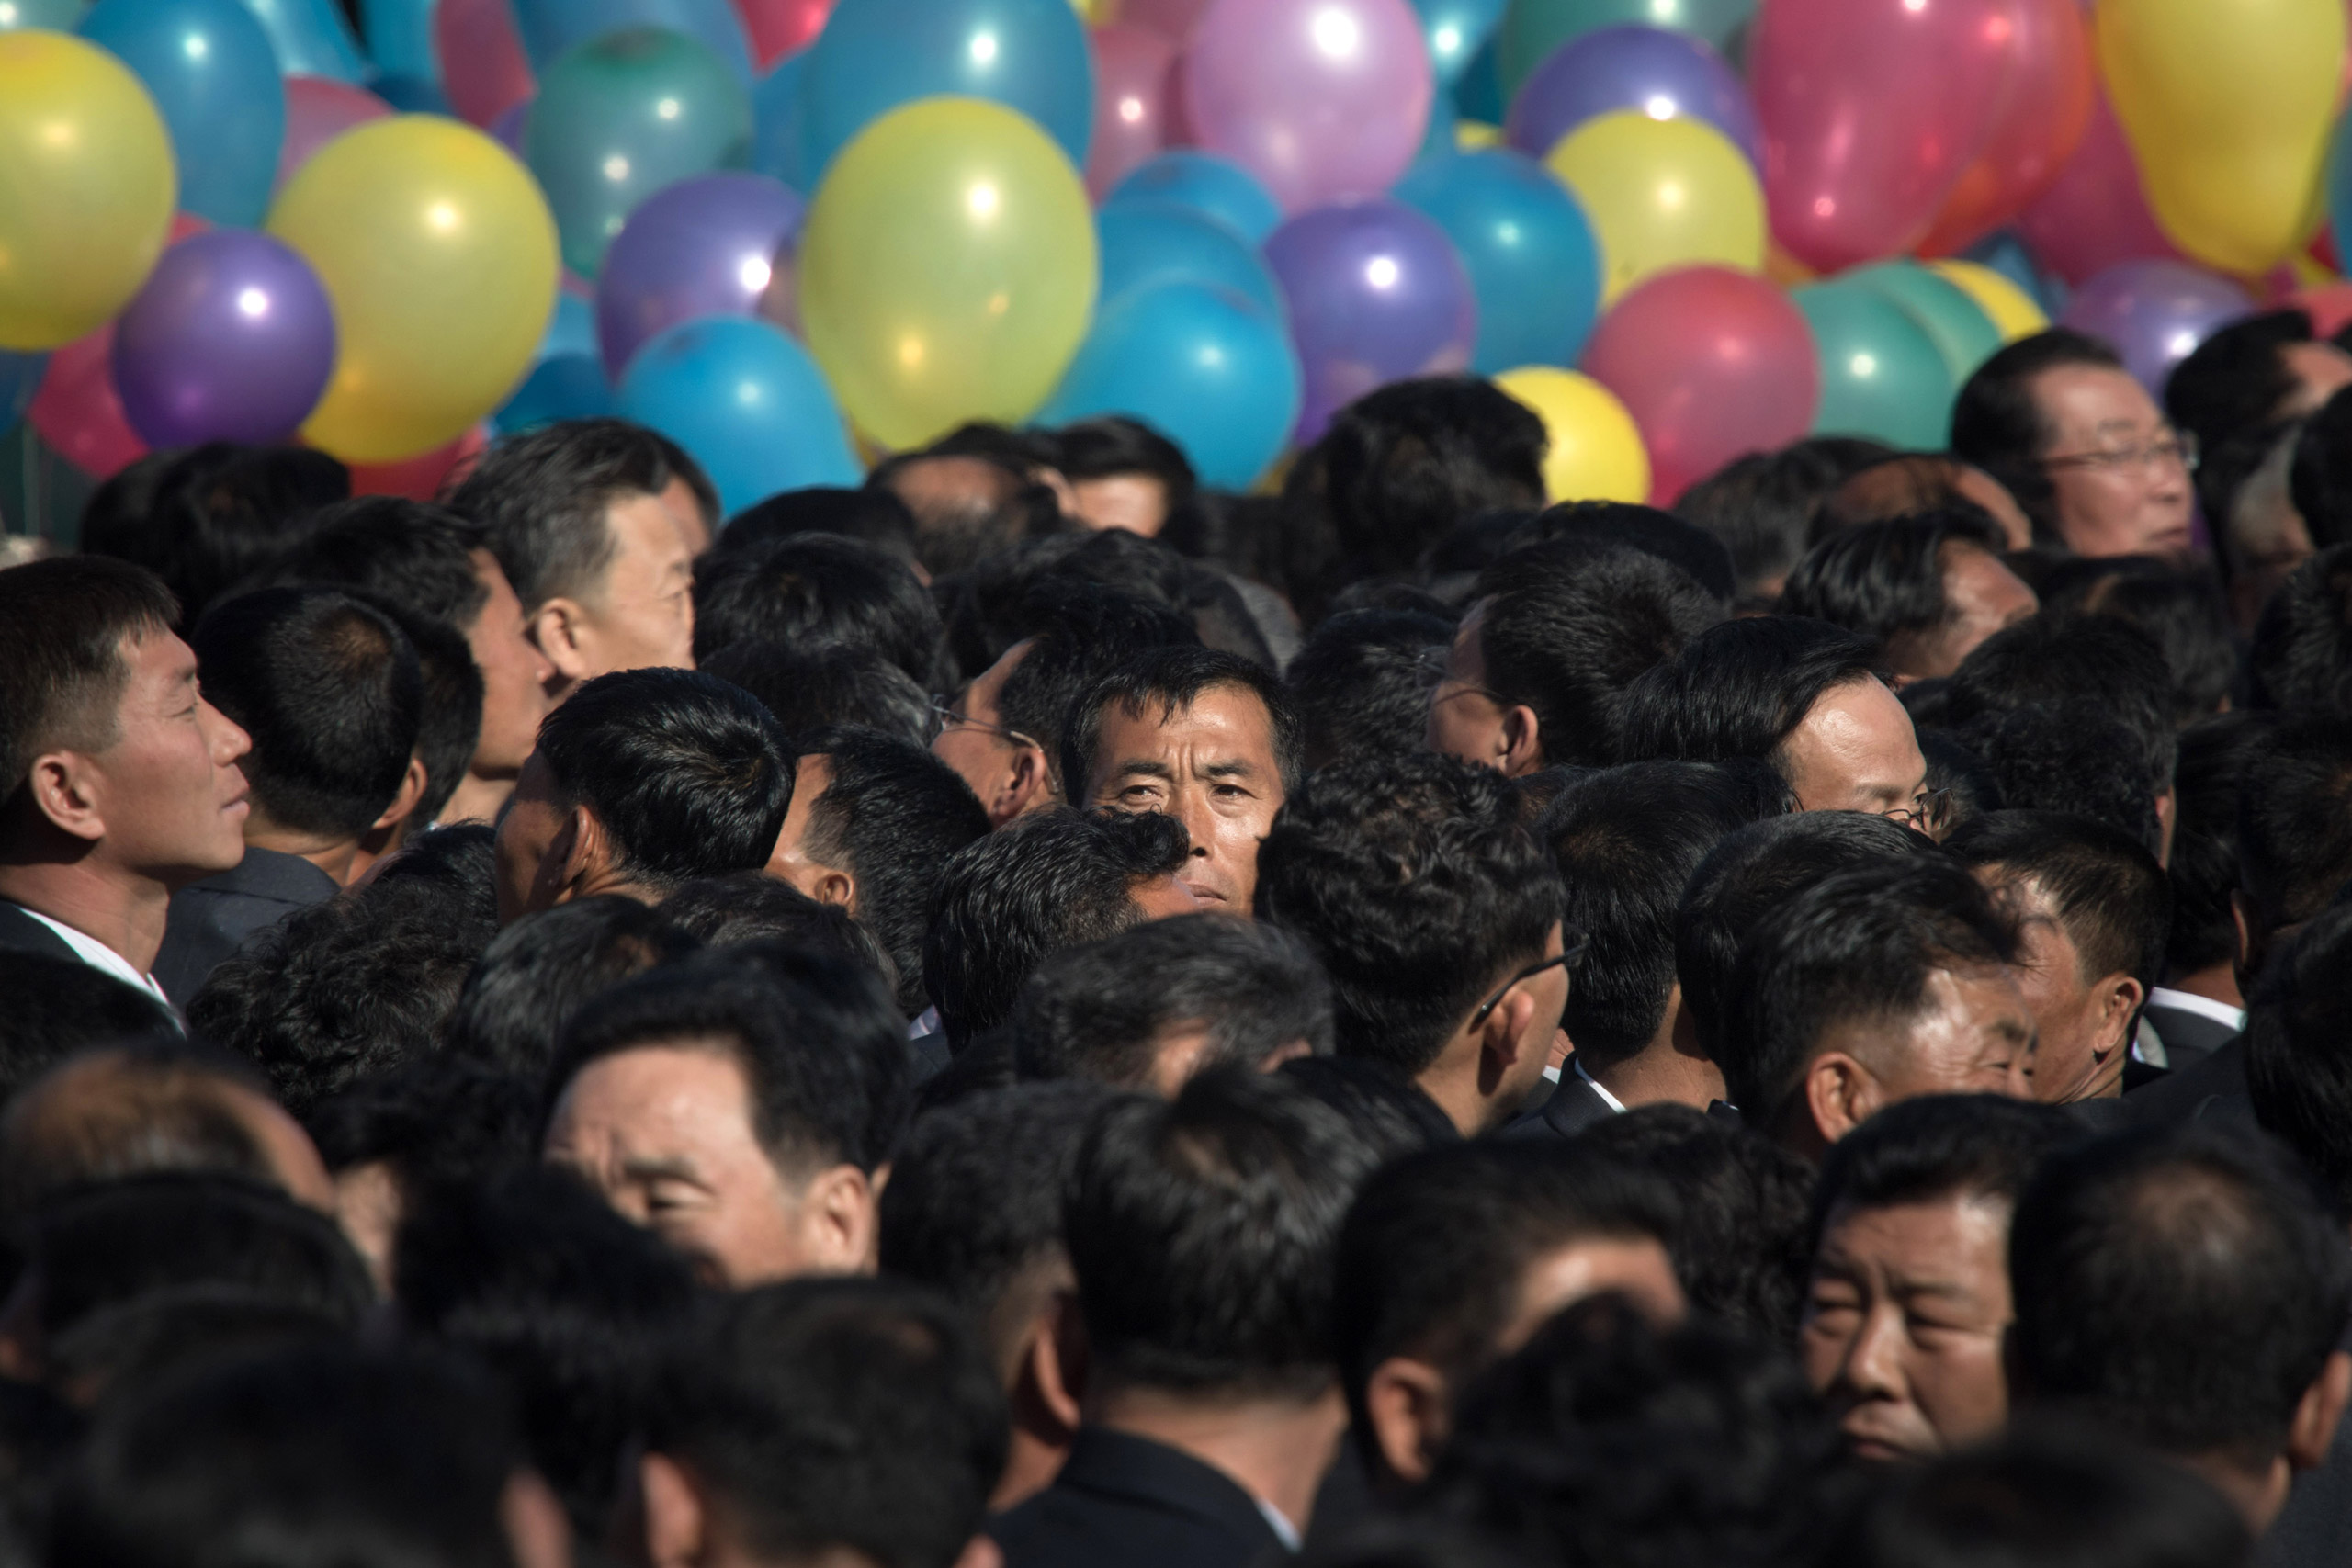 Attendees wait for the opening ceremony for the Ryomyong Street housing development in Pyongyang on April 13, 2017. Completion of the sprawling Ryomyong Street development, just down a wide avenue from the mausoleum where Kim Jong-Un's grandfather Kim Il-Sung and father Kim Jong-Il lie in state, was repeatedly promised in time for the 105th anniversary of the birth of the North's founder.